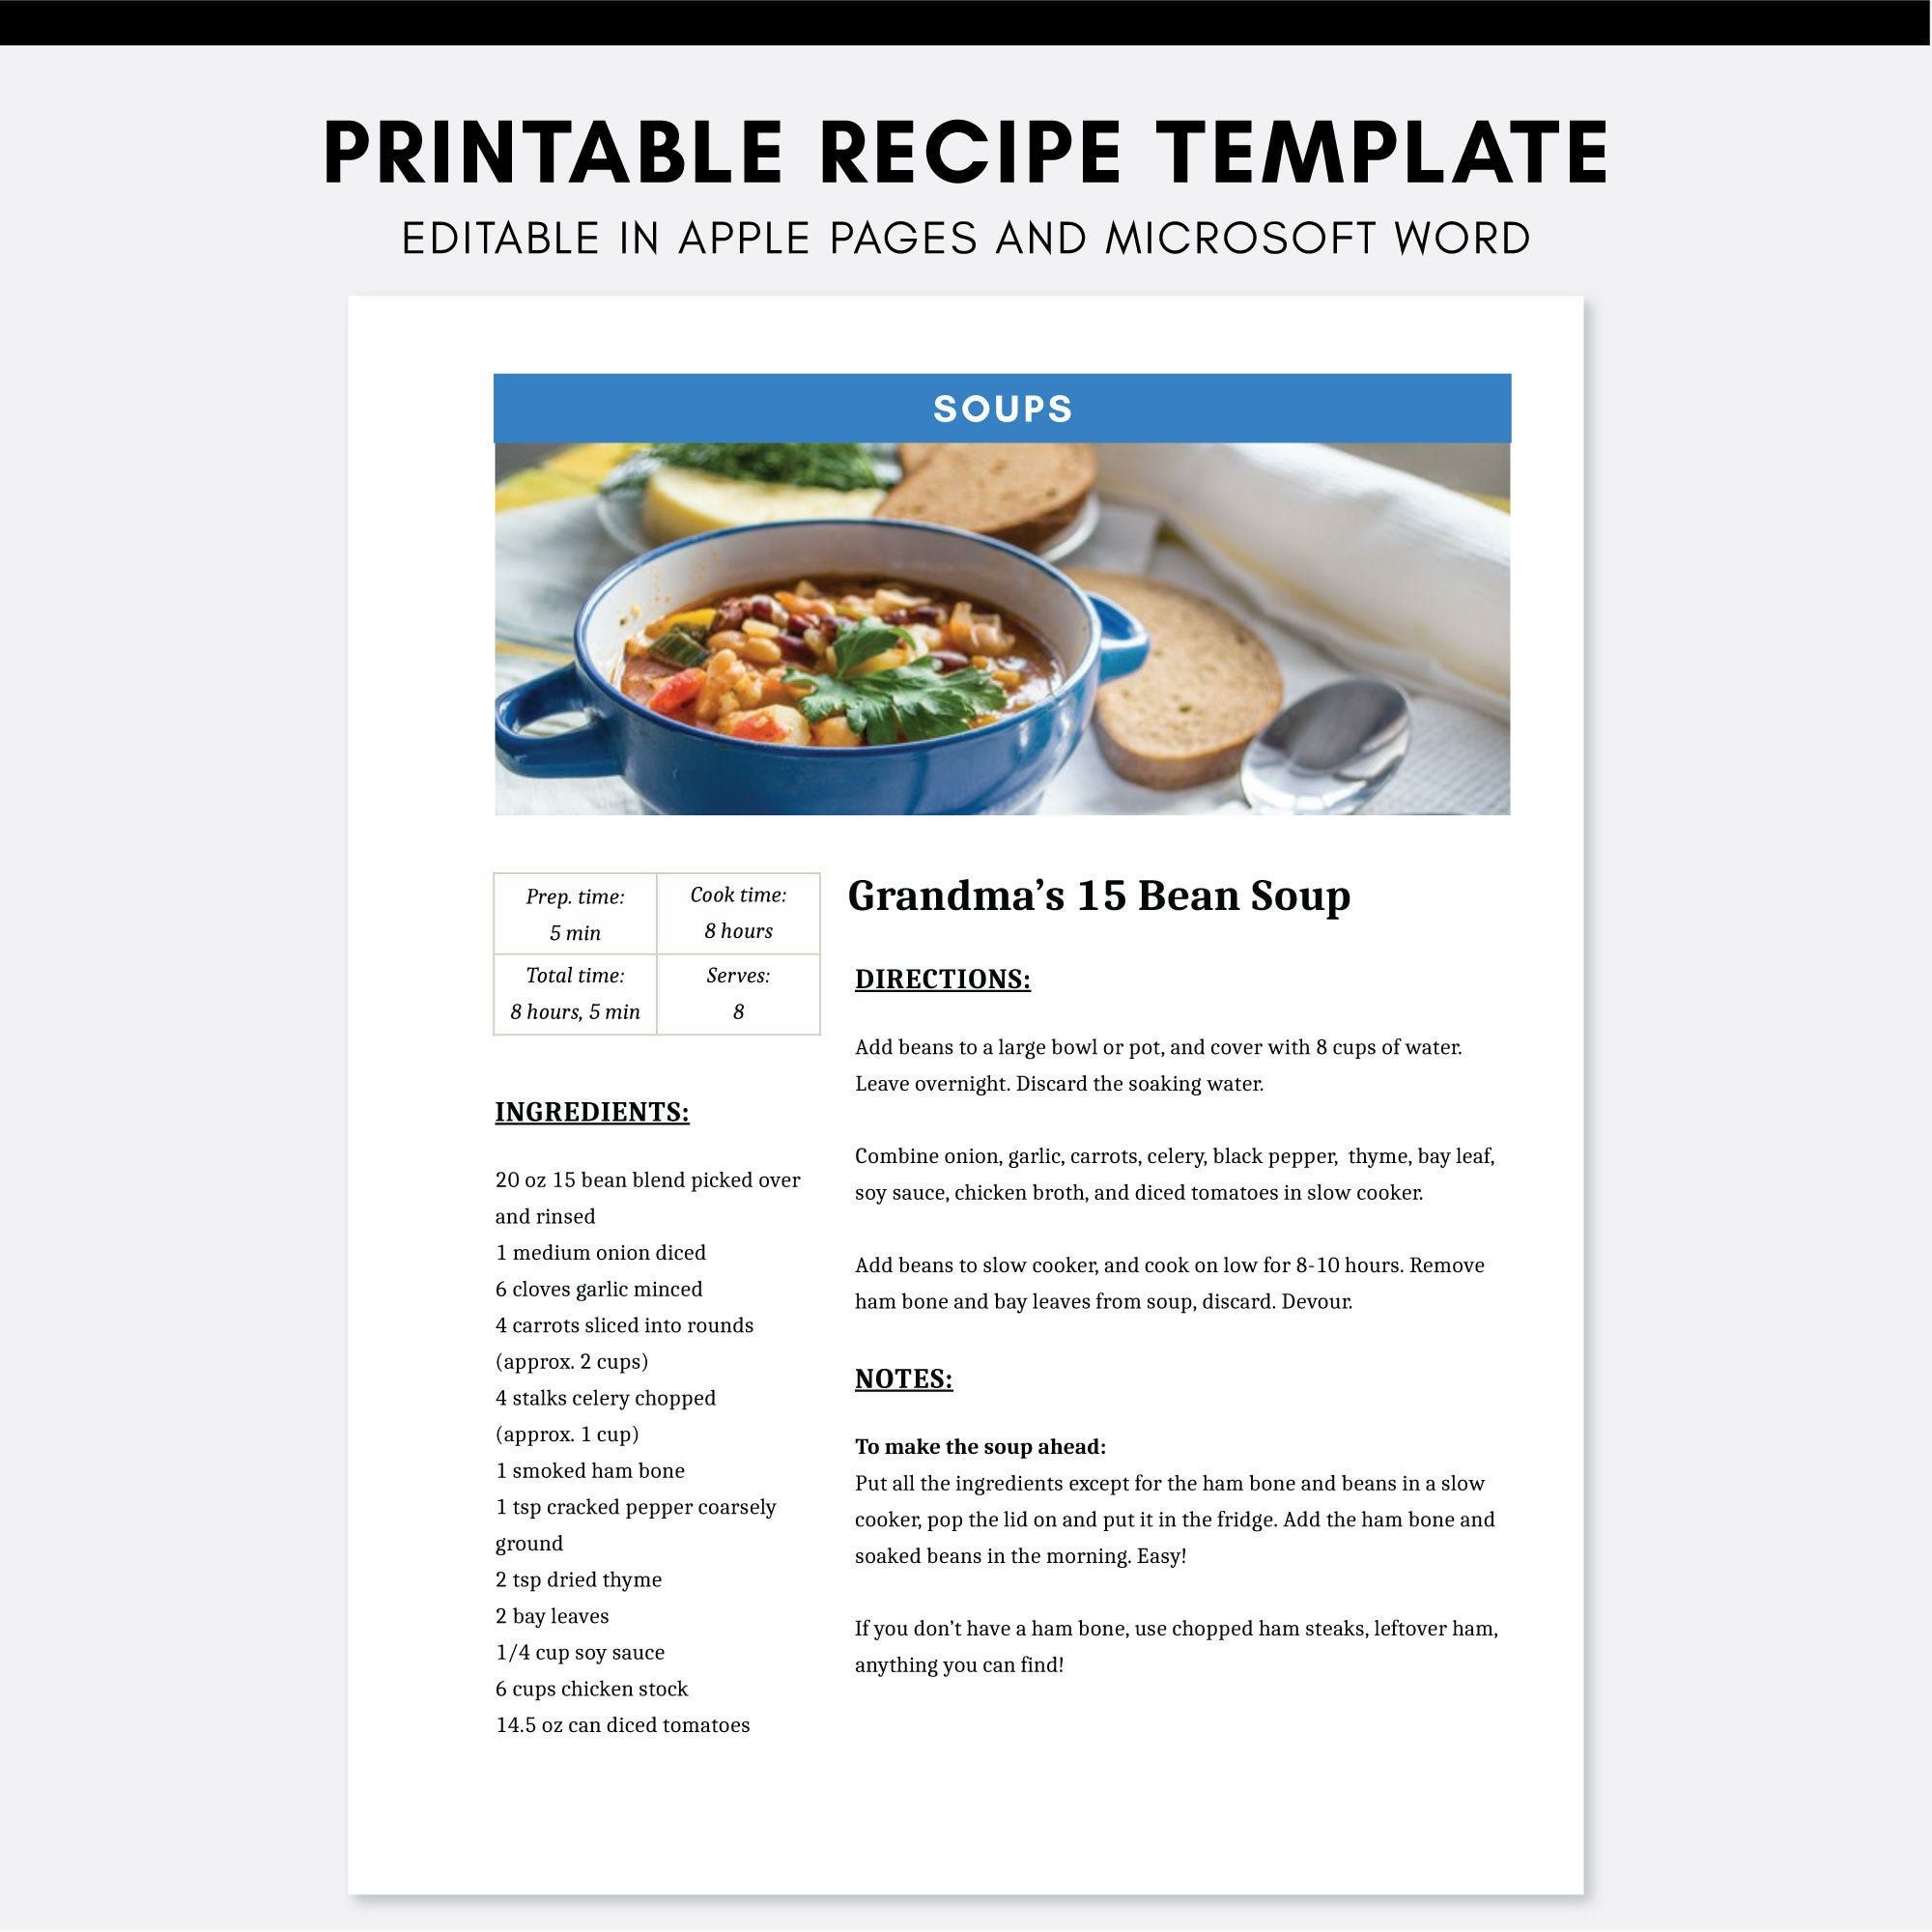 Editable Recipe Pages Apple Pages Microsoft Word Cookbook Etsy Recipe Template Food Printables Homemade Cookbook